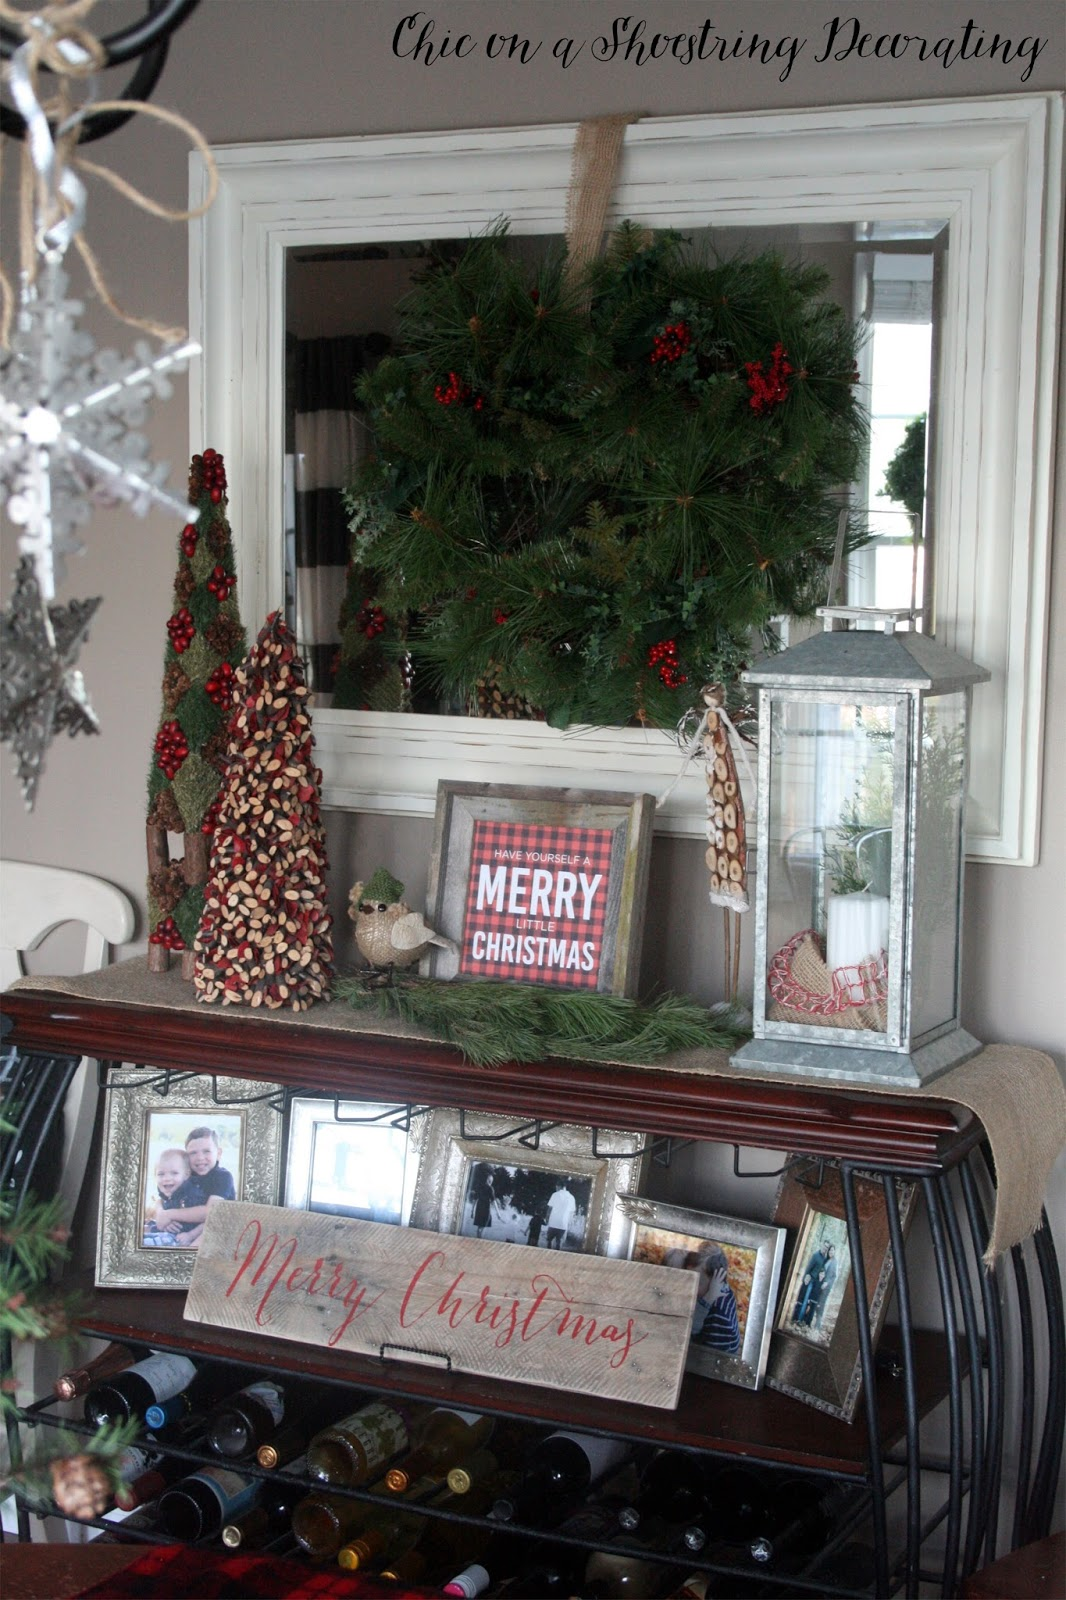 Chic on a shoestring decorating farmhouse christmas decor for Next home xmas decorations